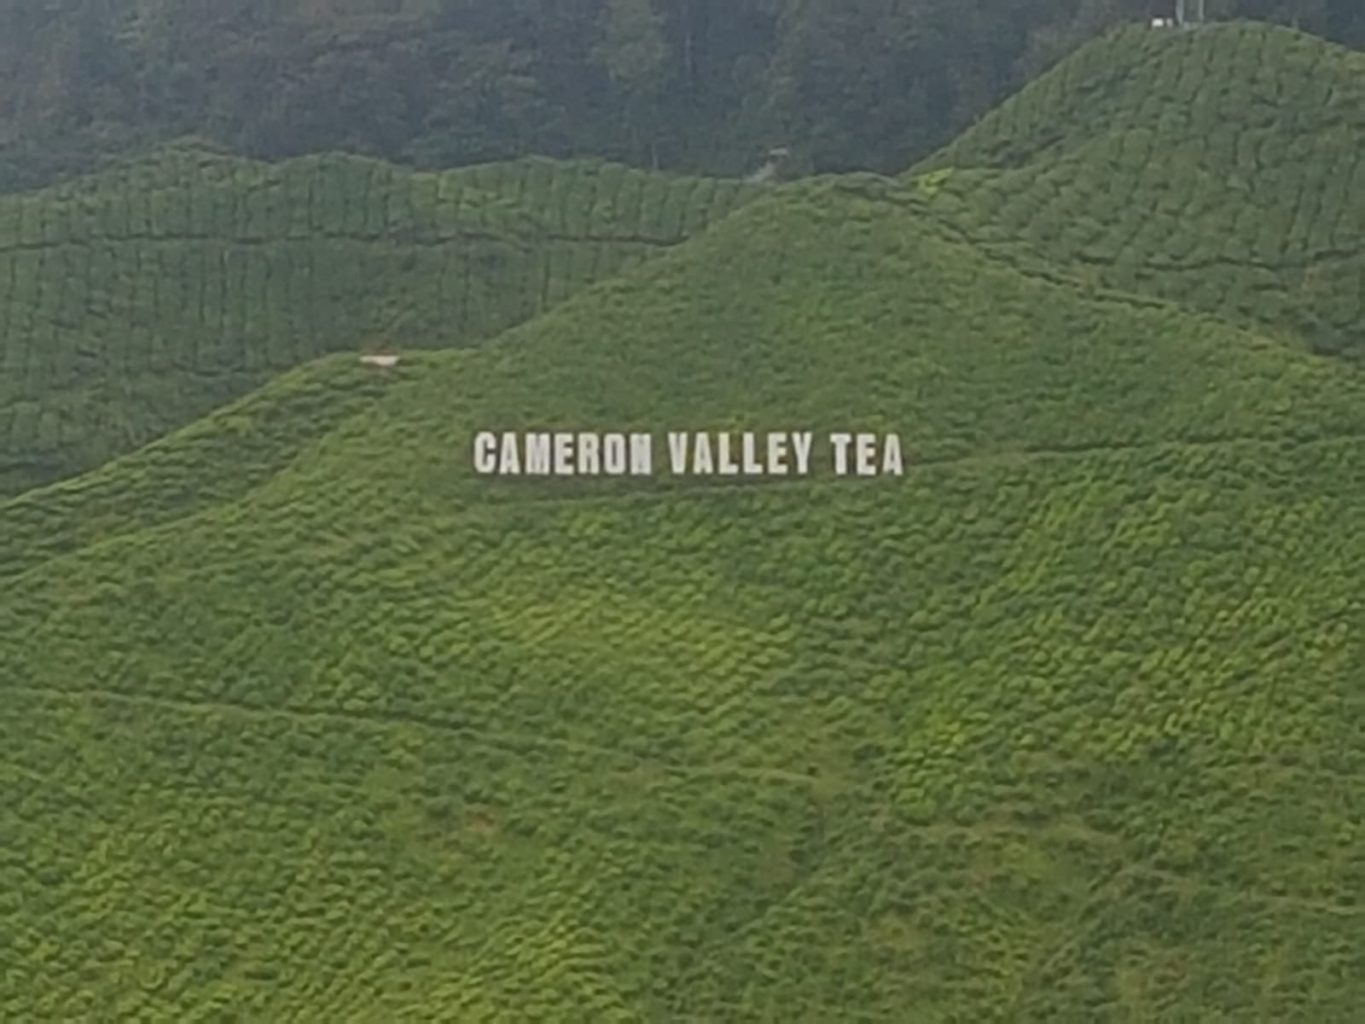 Cameron Valley Tea